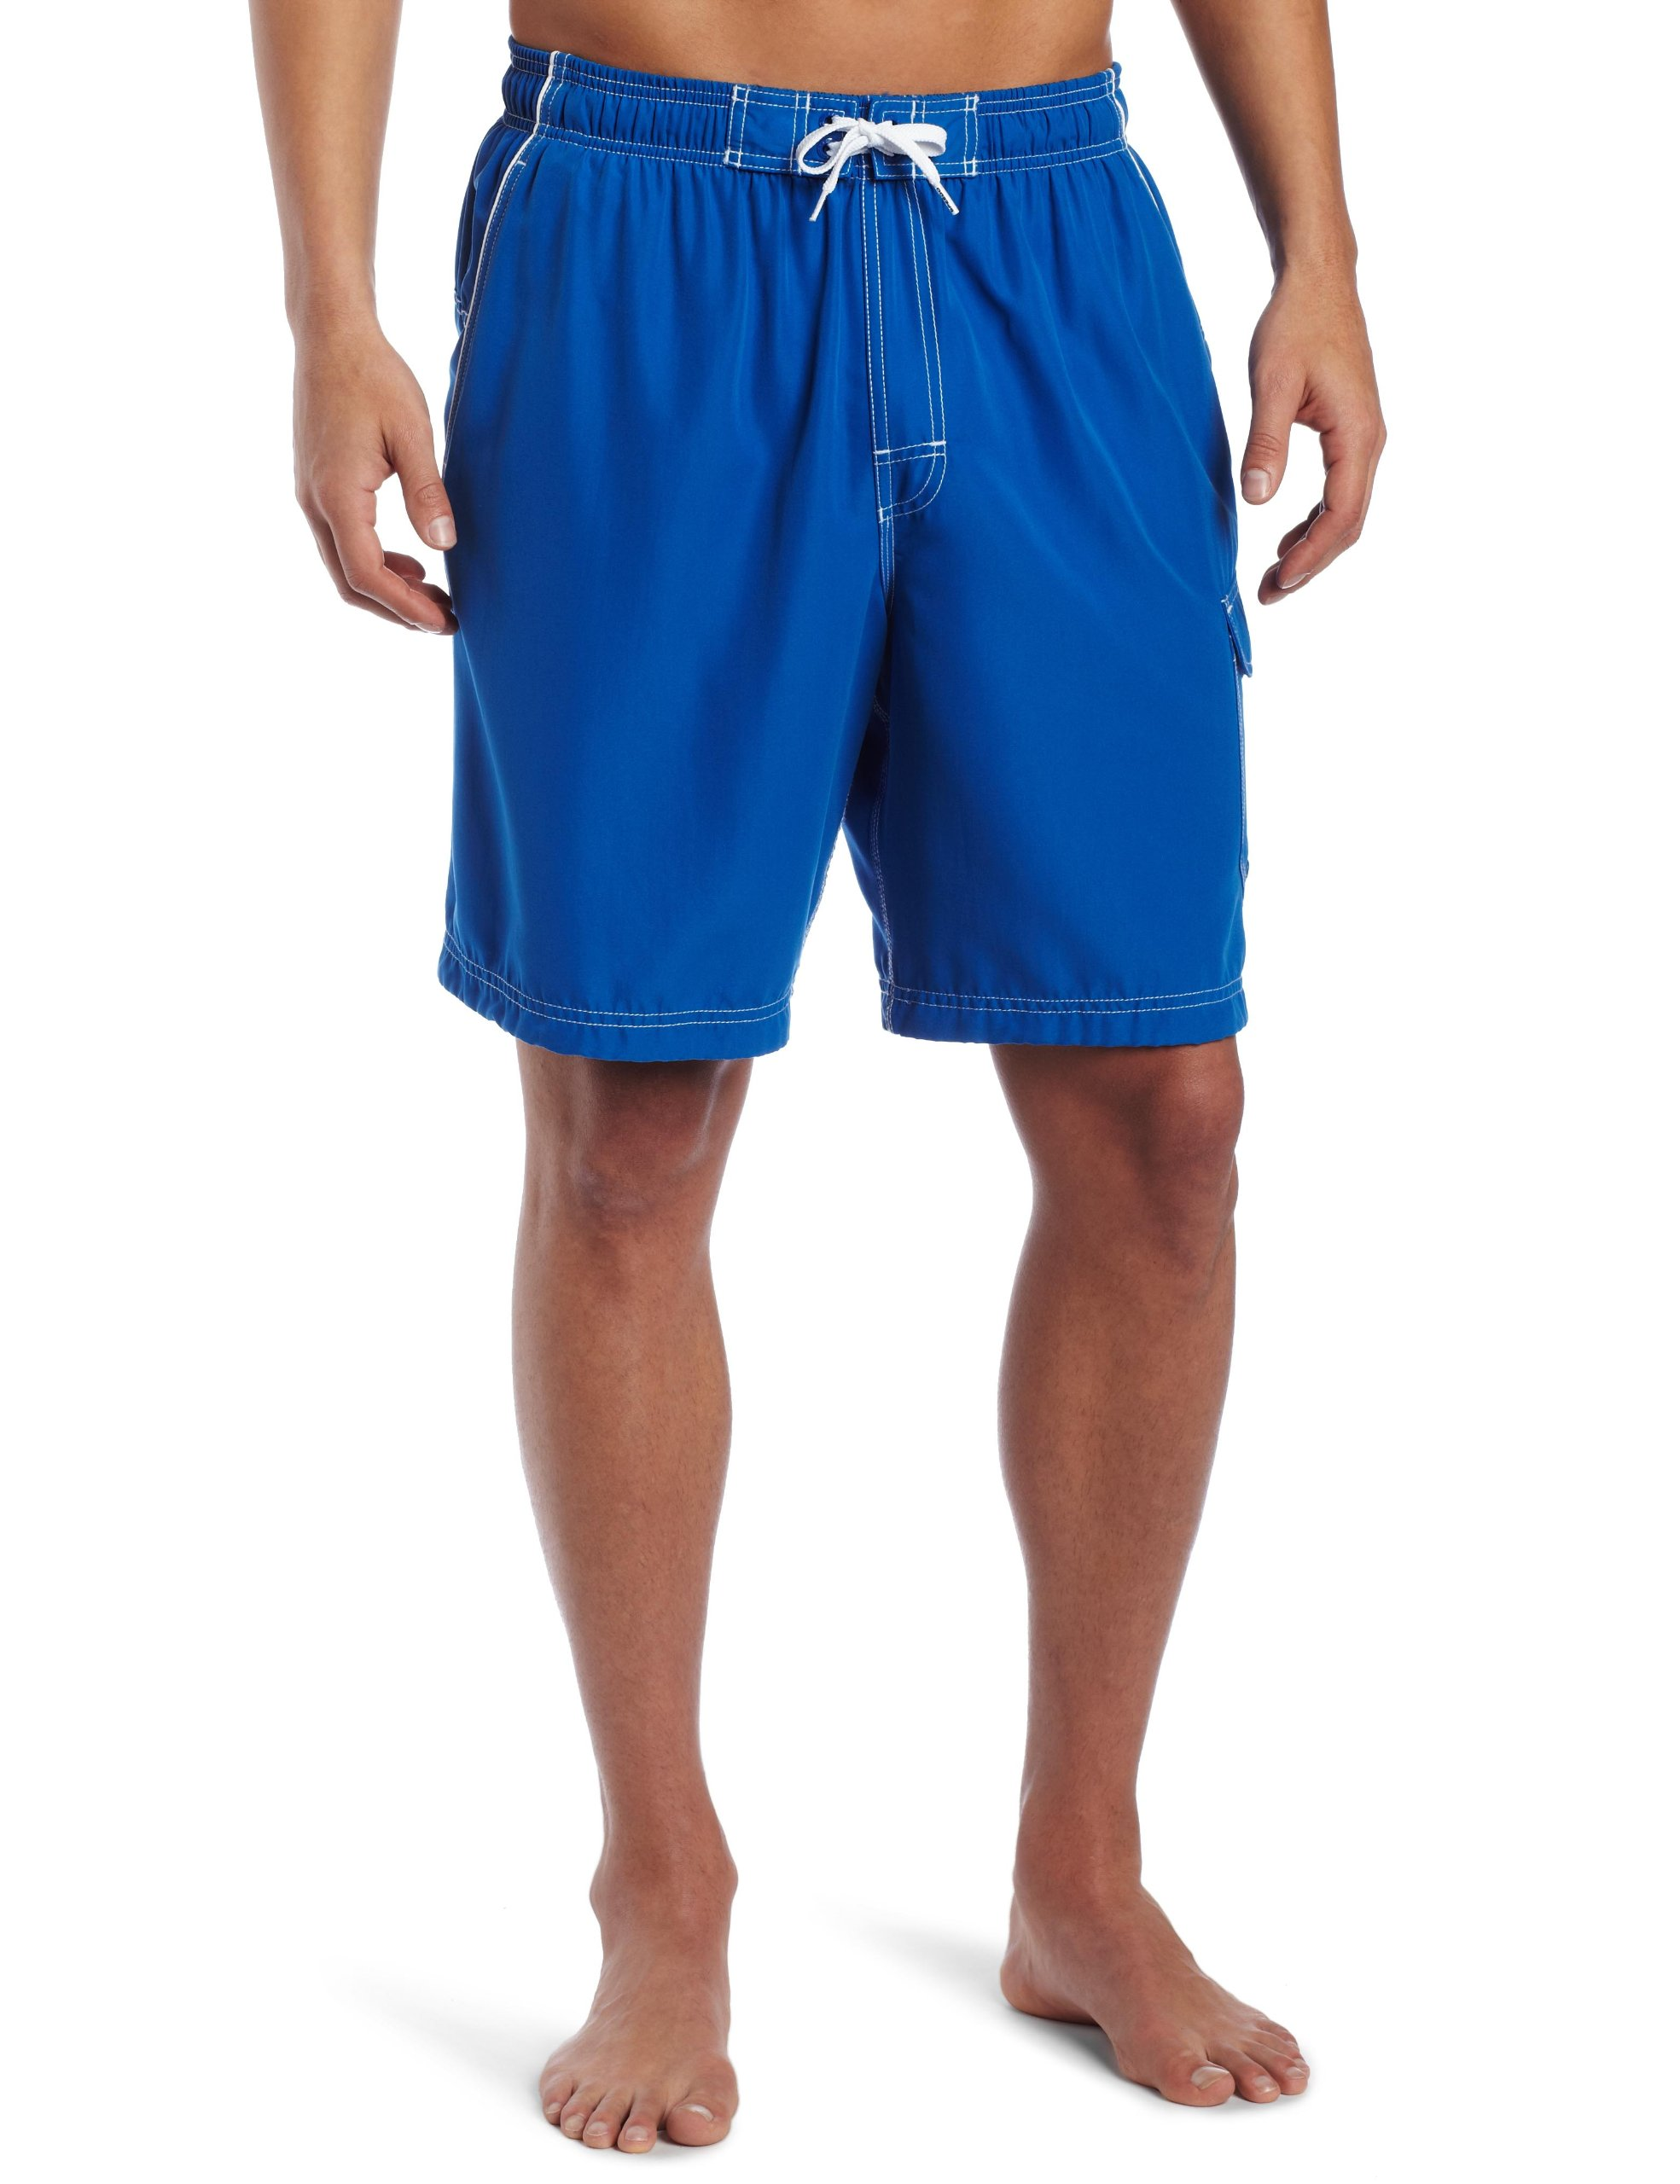 Speedo Men's Marina Core Basic Watershorts, Big & Tall, Classic Blue, 4X